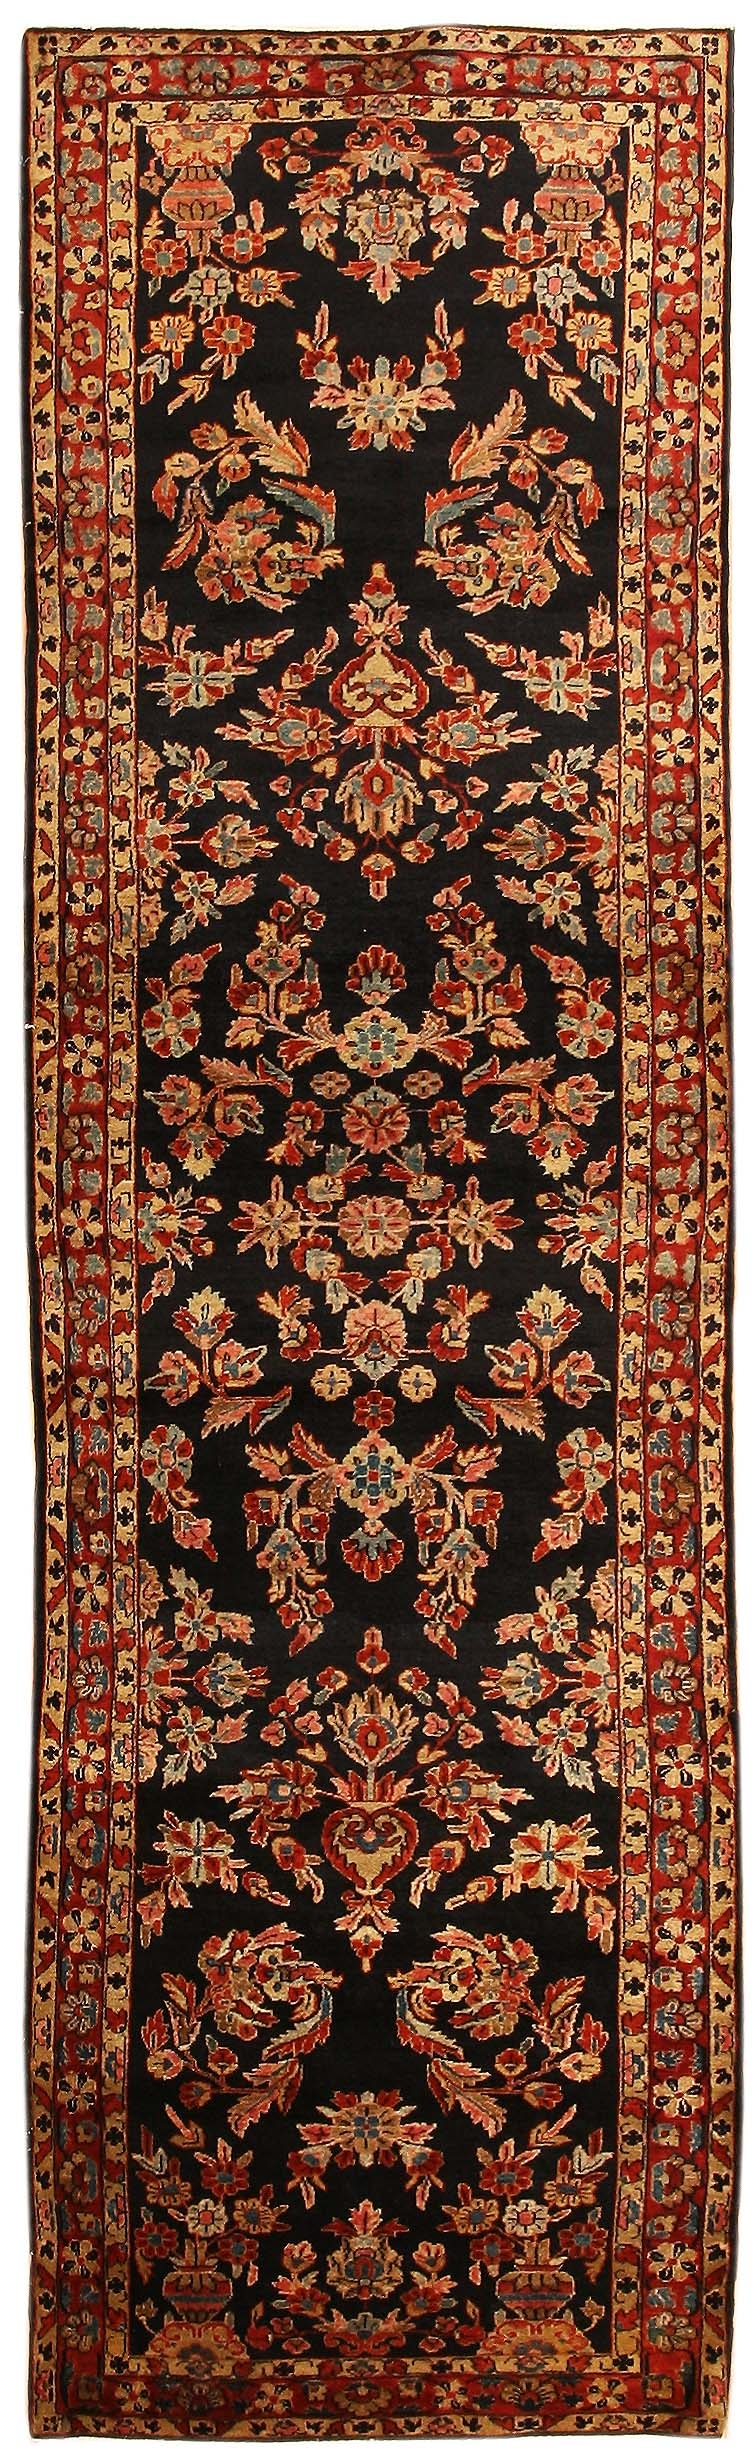 Oriental Carpet Runners Carpet Vidalondon Pertaining To Persian Carpet Runners (View 5 of 15)